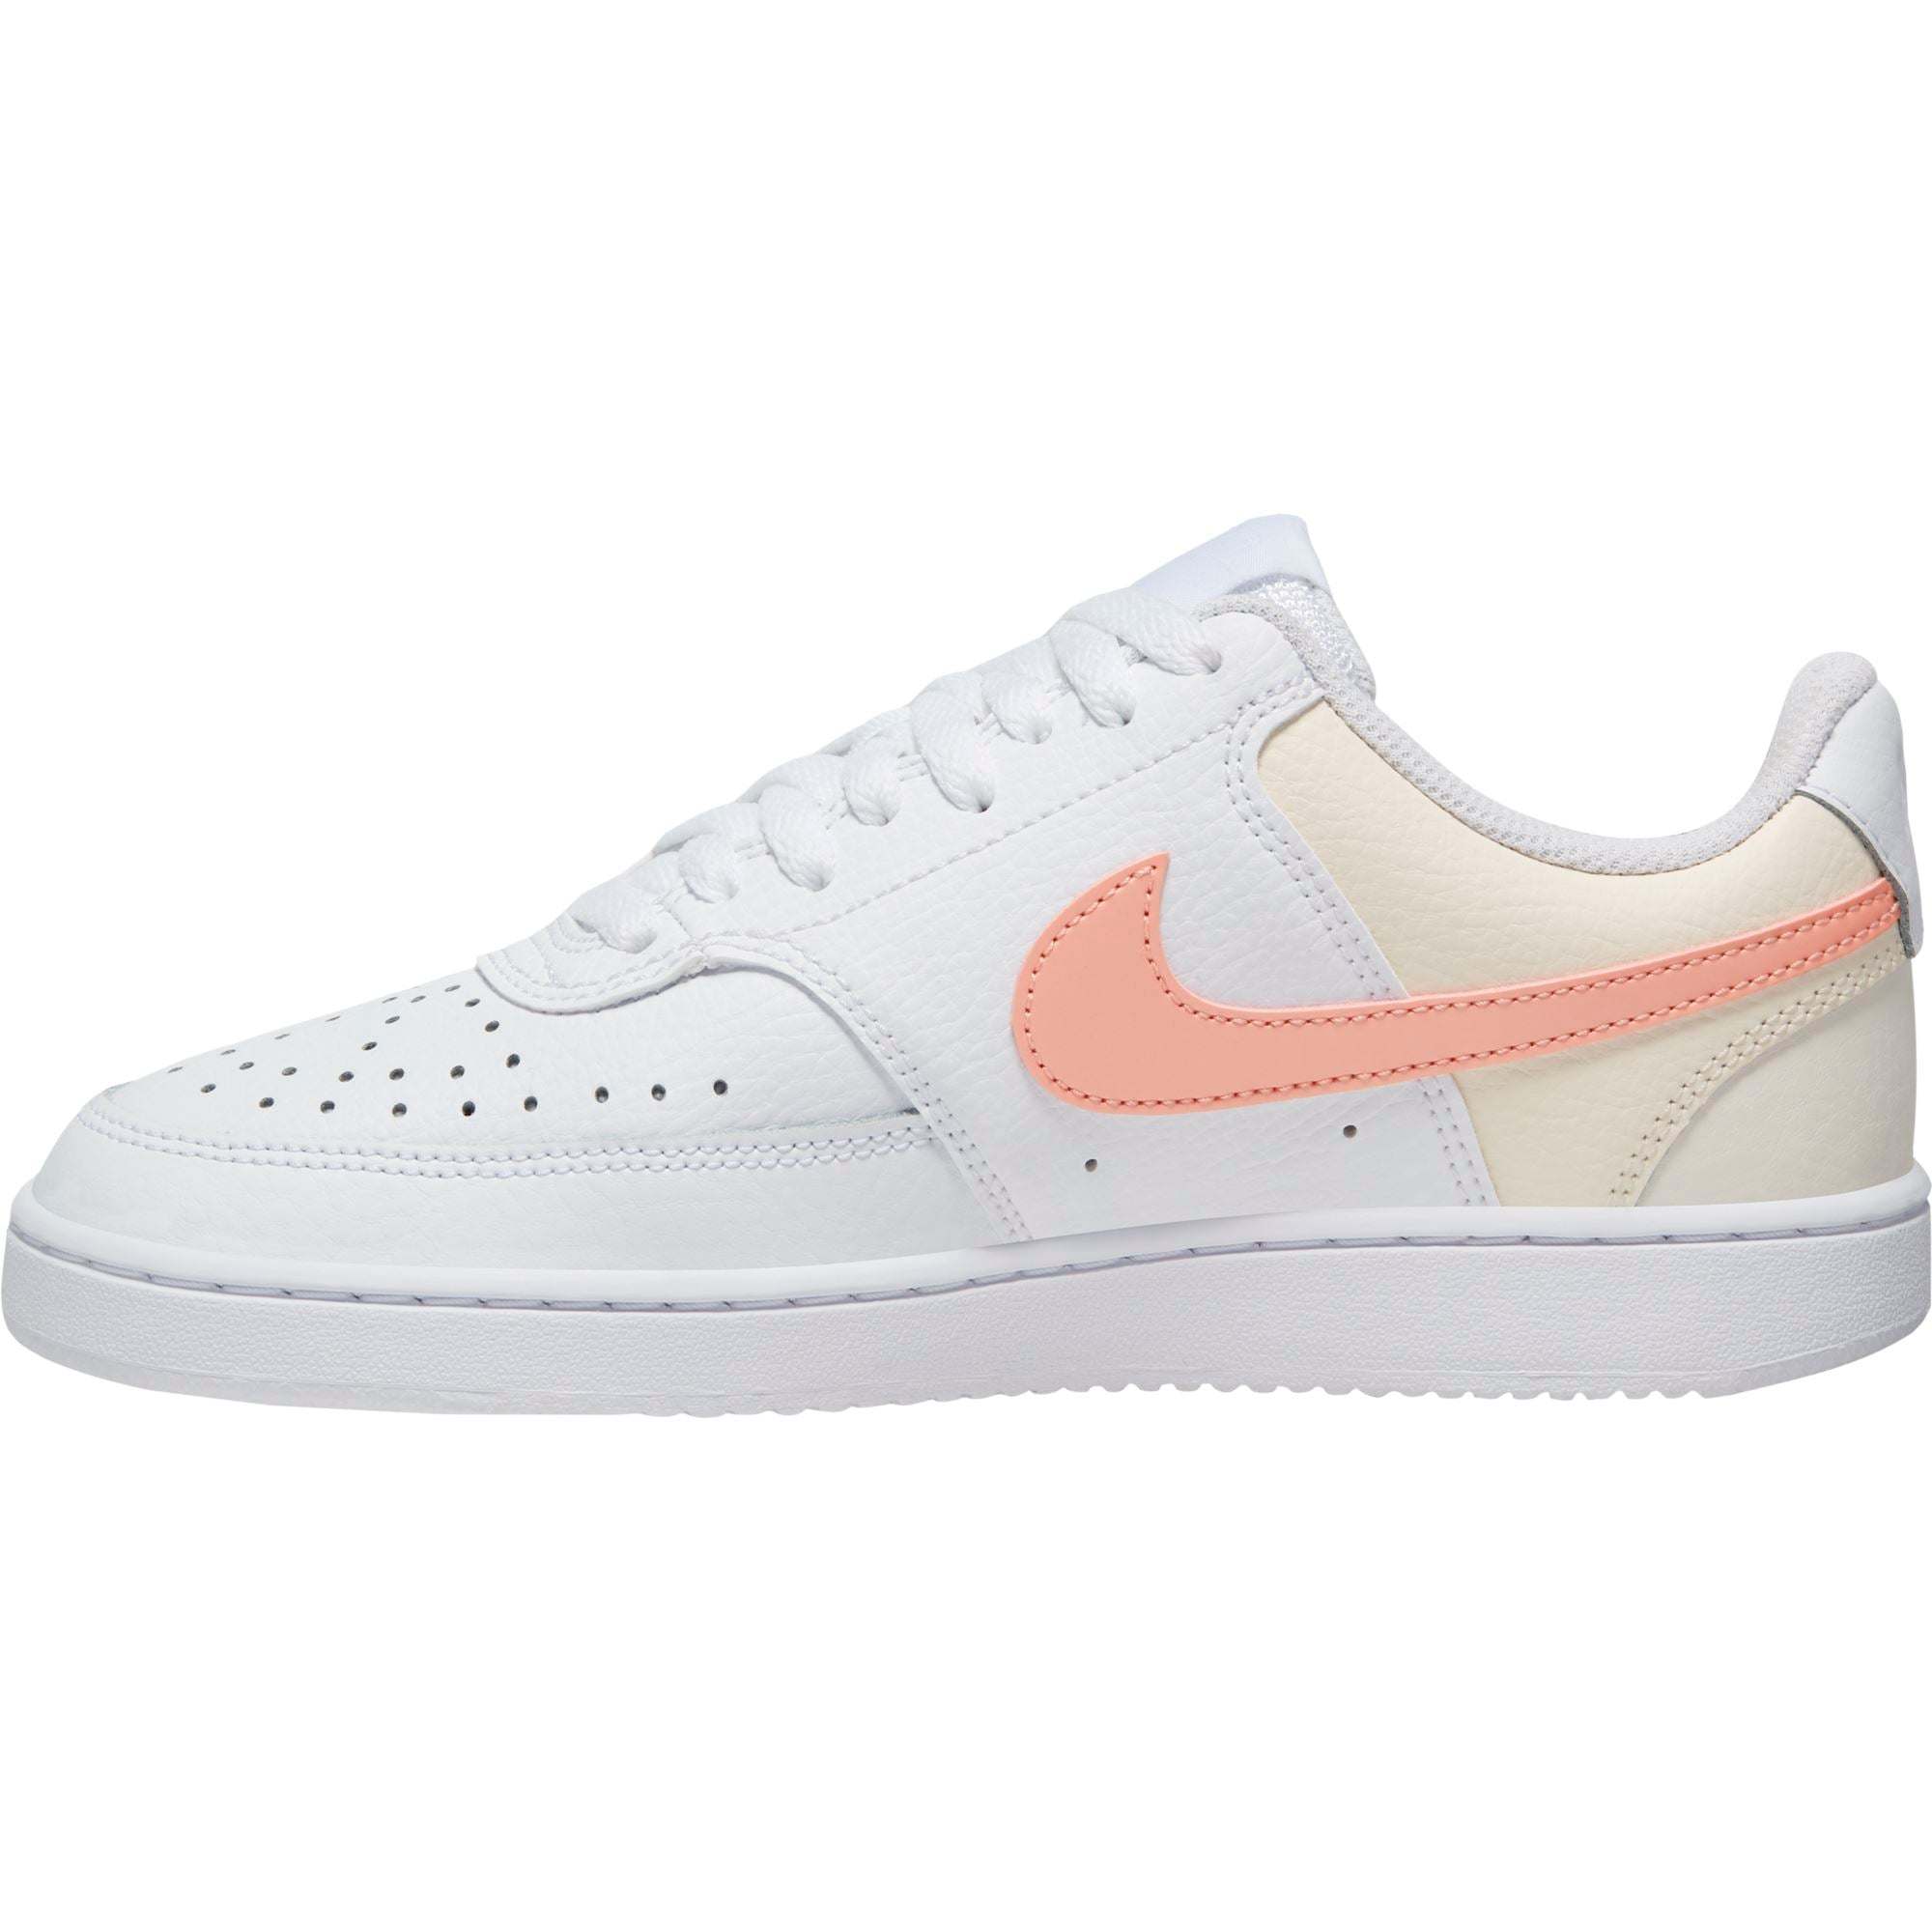 Nike Womens Court Vision Low - White/Washed Coral/Aura/PaleIvory SP-Footwear-Womens Nike